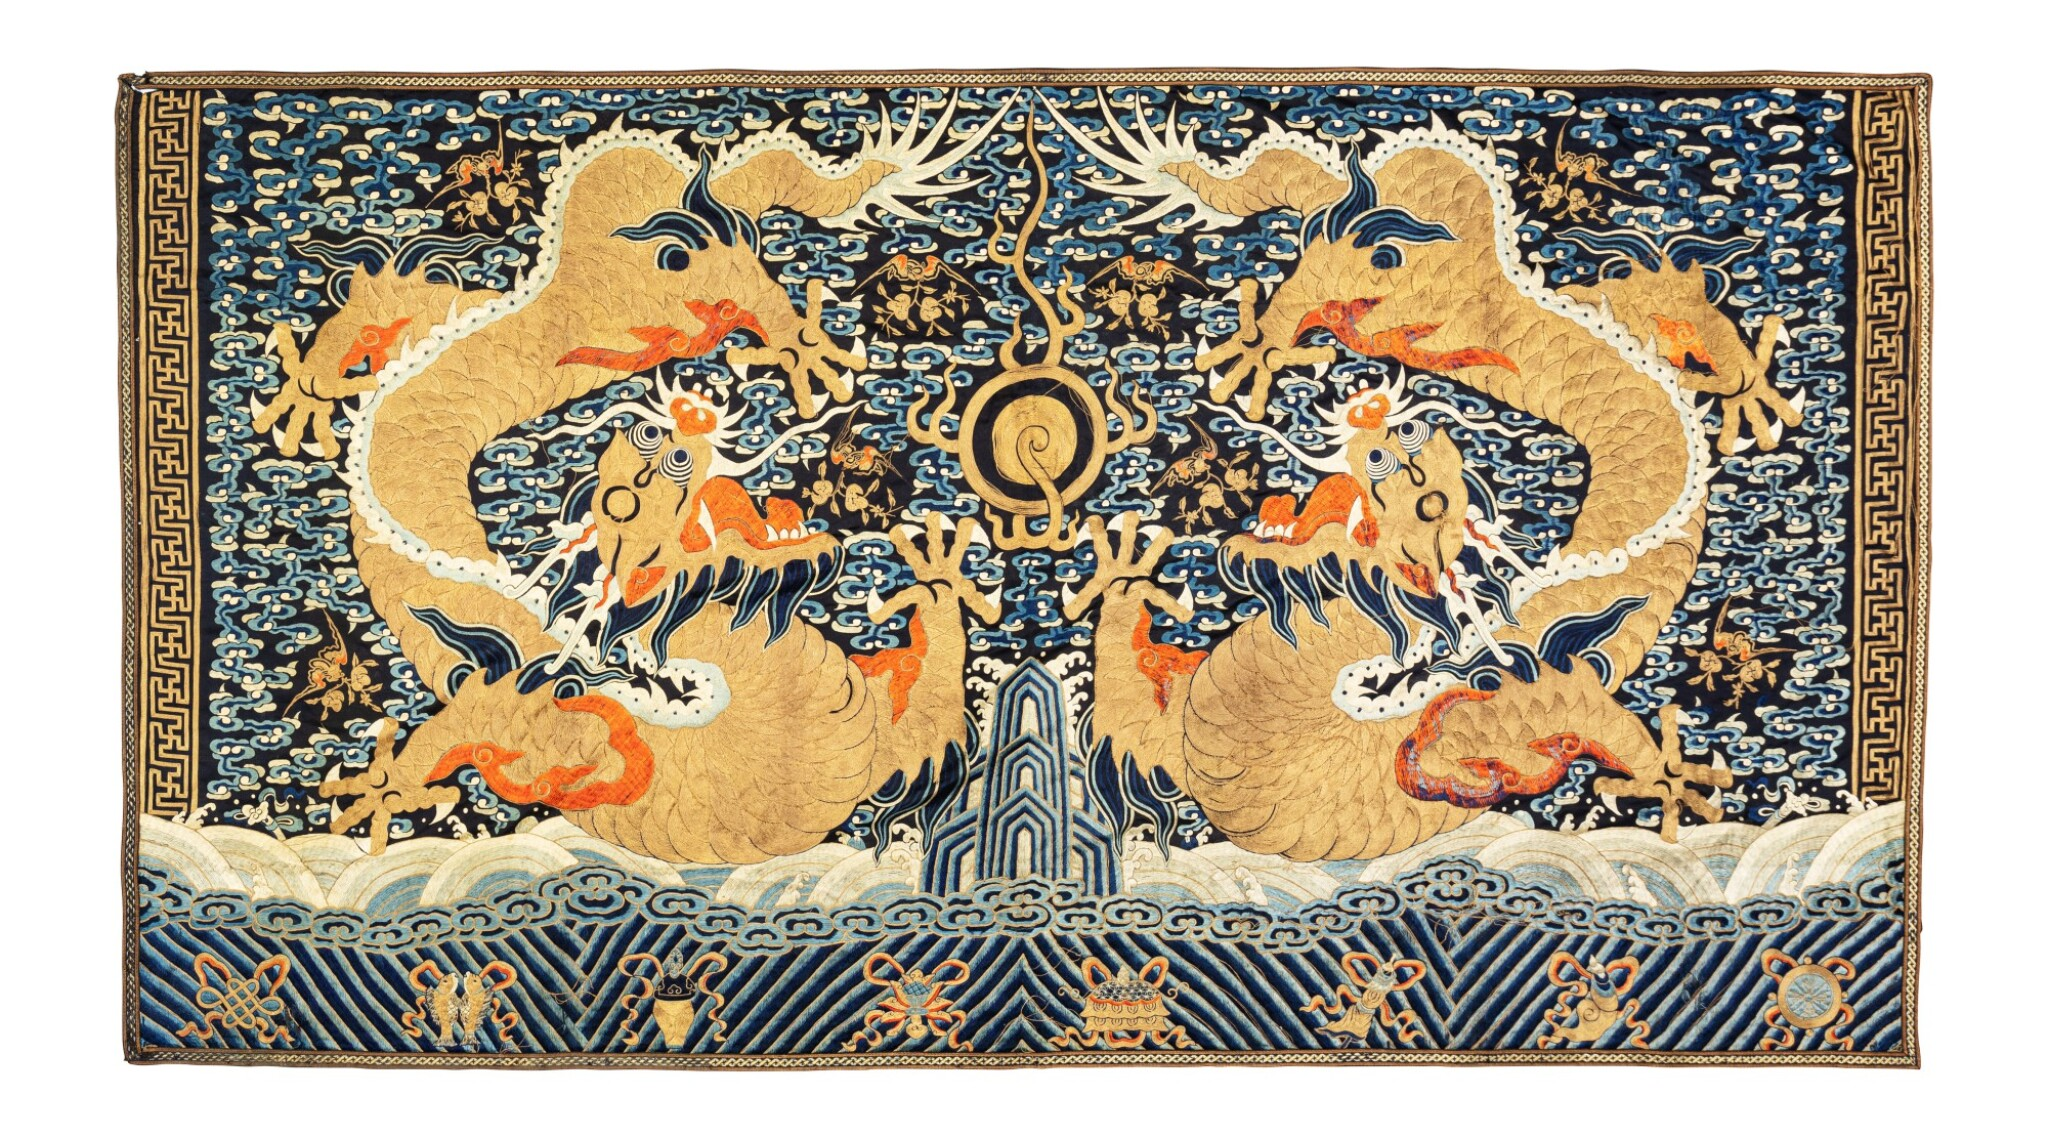 View 1 of Lot 153. Grande tenture rectangulaire en soie brodée Dynastie Qing, XIXE siècle | 清十九世紀 藍緞繡雙龍趕珠紋掛幅 | A very large blue-ground gold-thread 'dragon' imperial wall hanging, Qing Dynasty, 19th century.